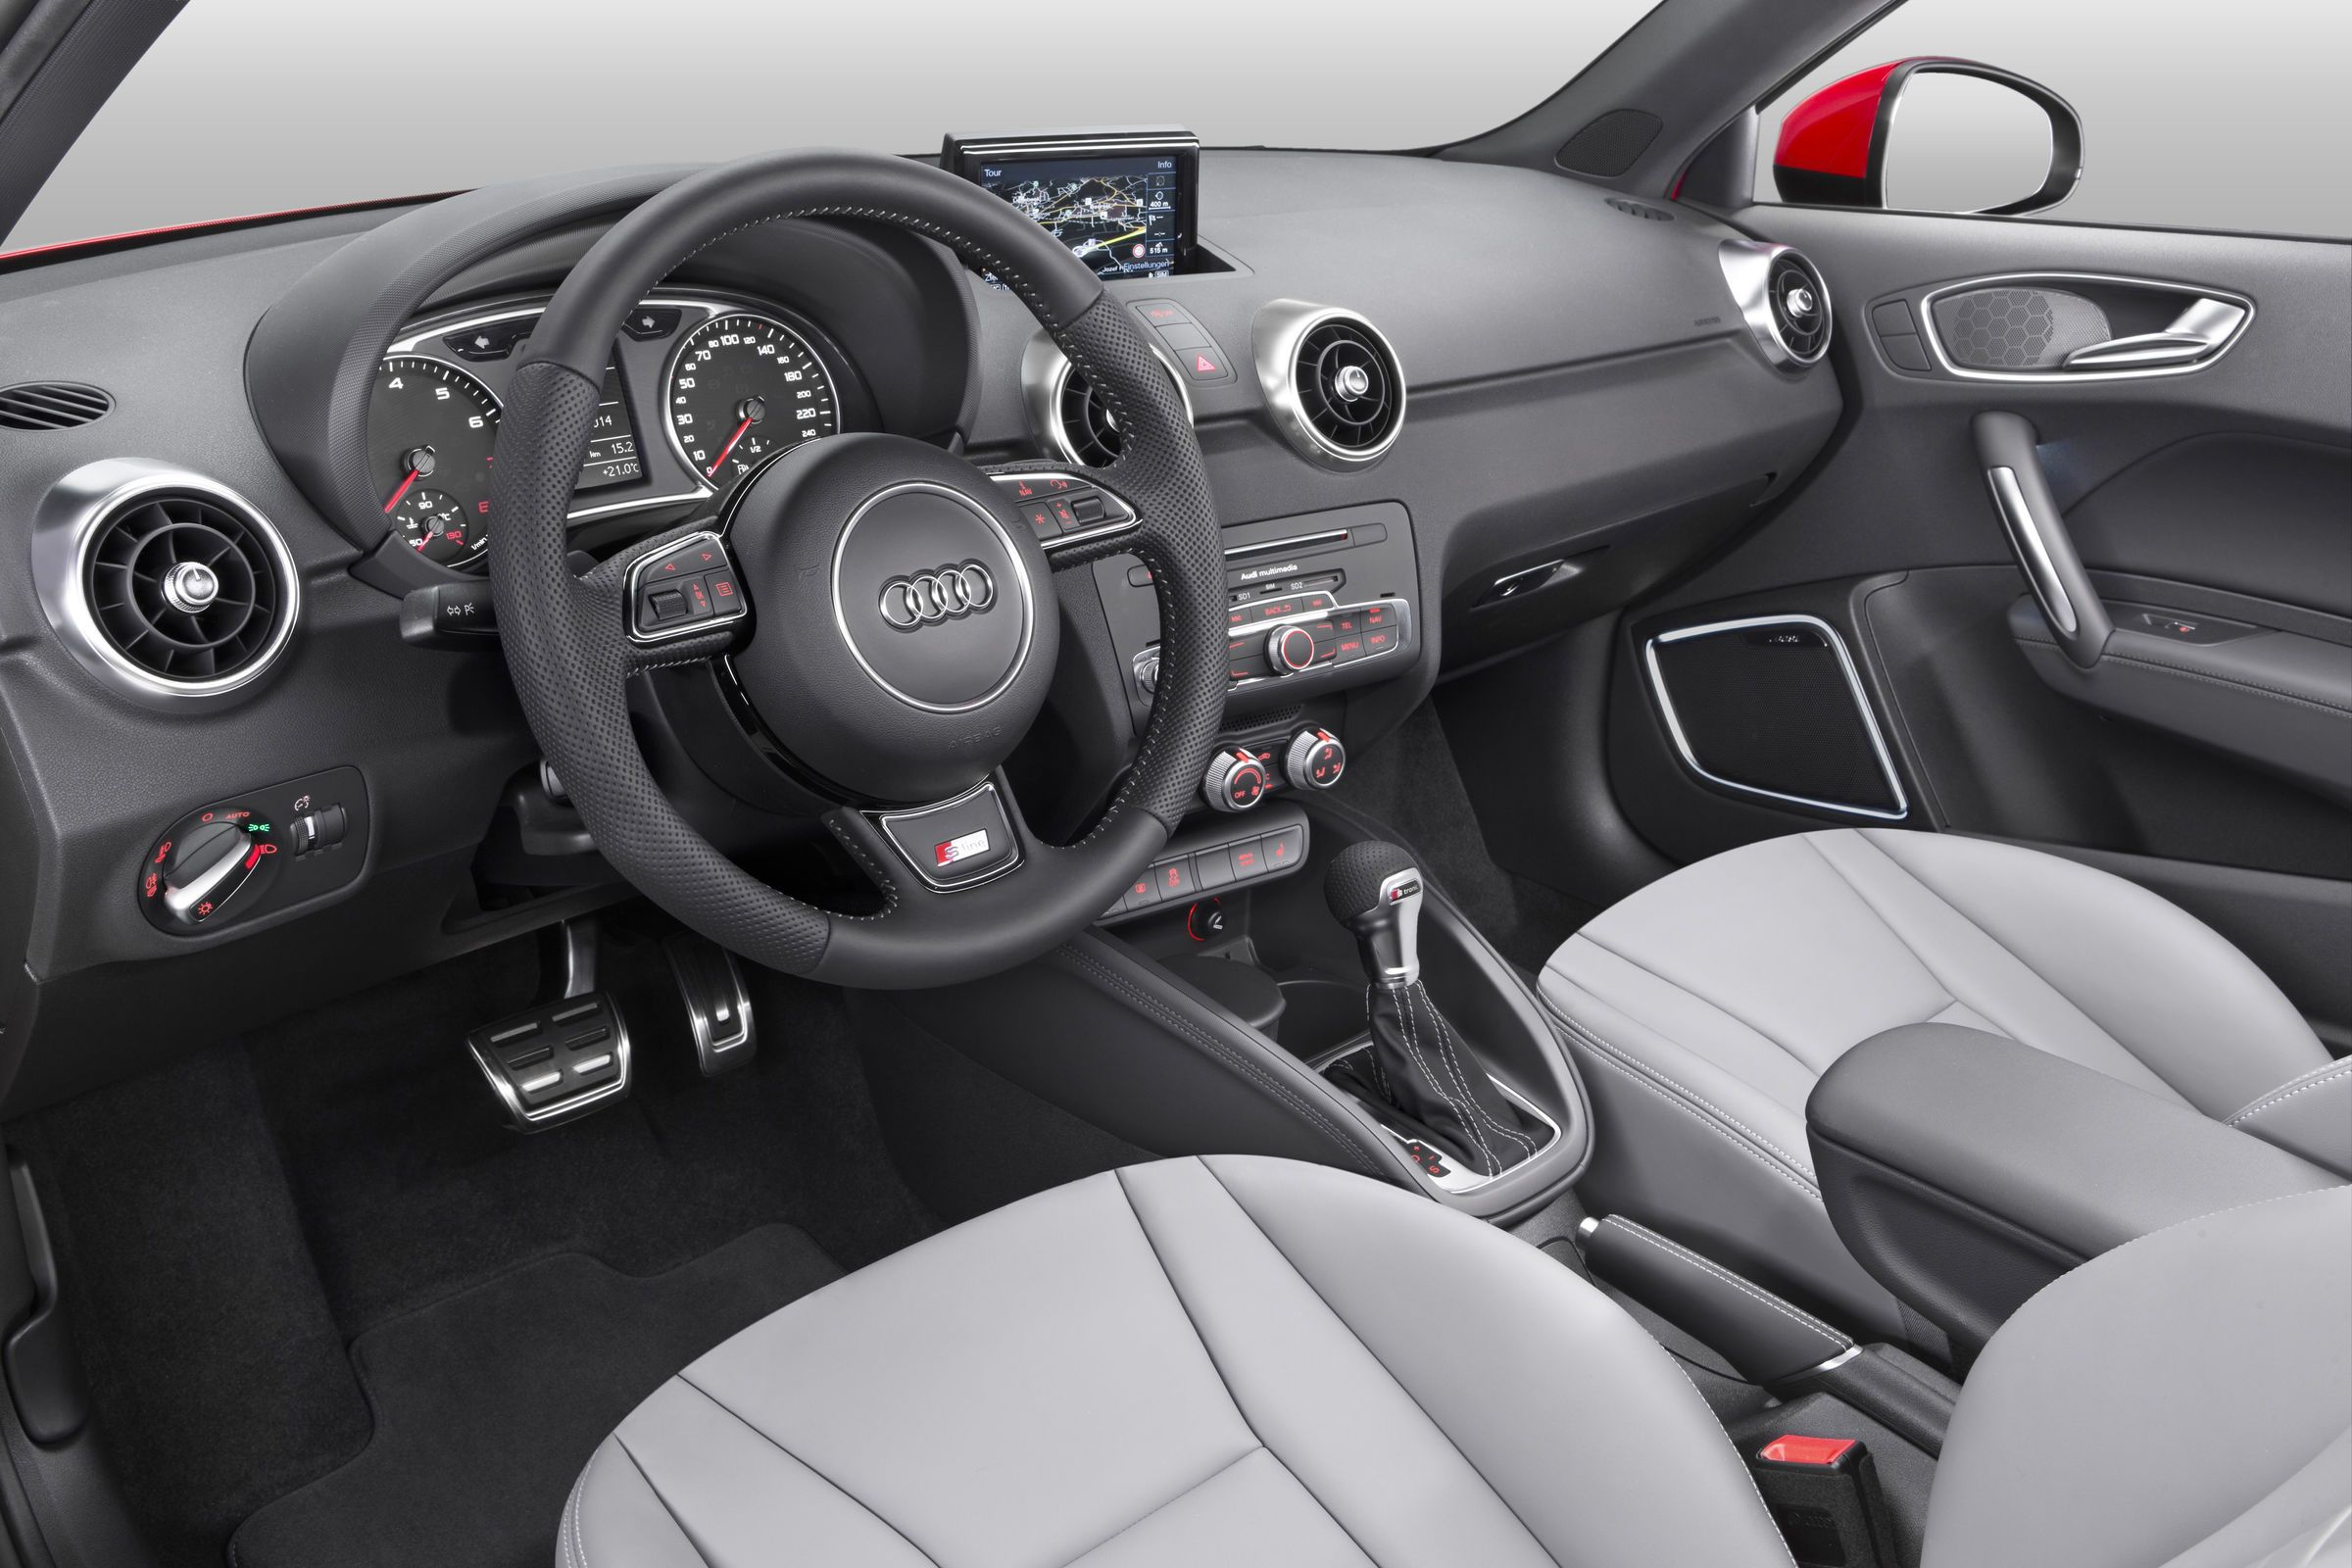 New Audi A1 Interior Audia1 Audia1red Bidly Www Bidly Me Audi